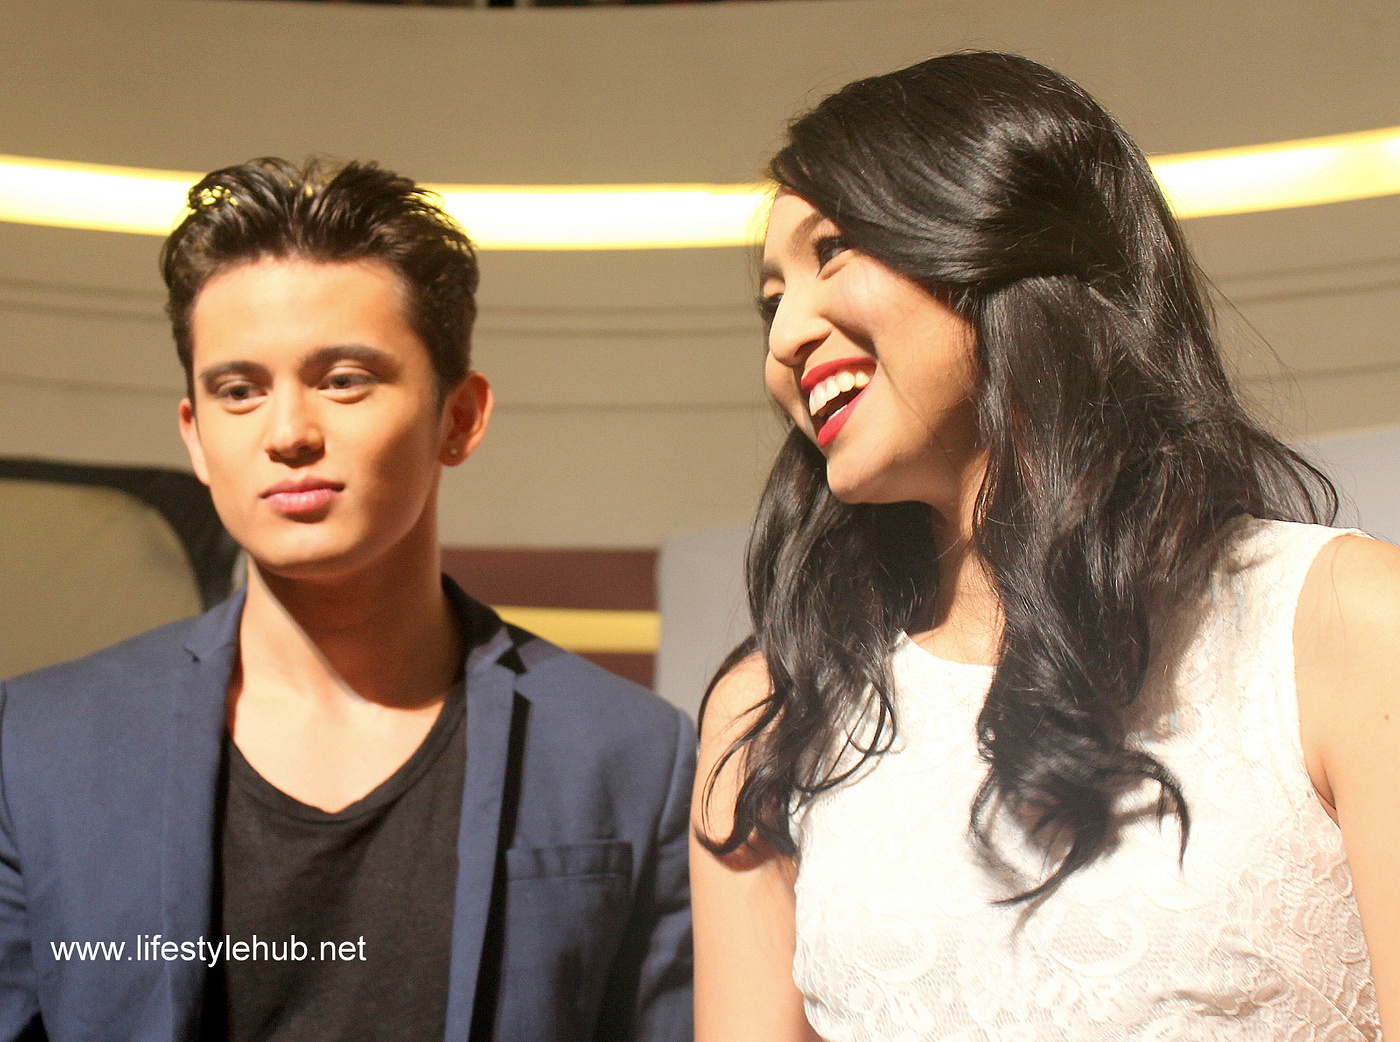 James Reid and Nadine Lustre kiss